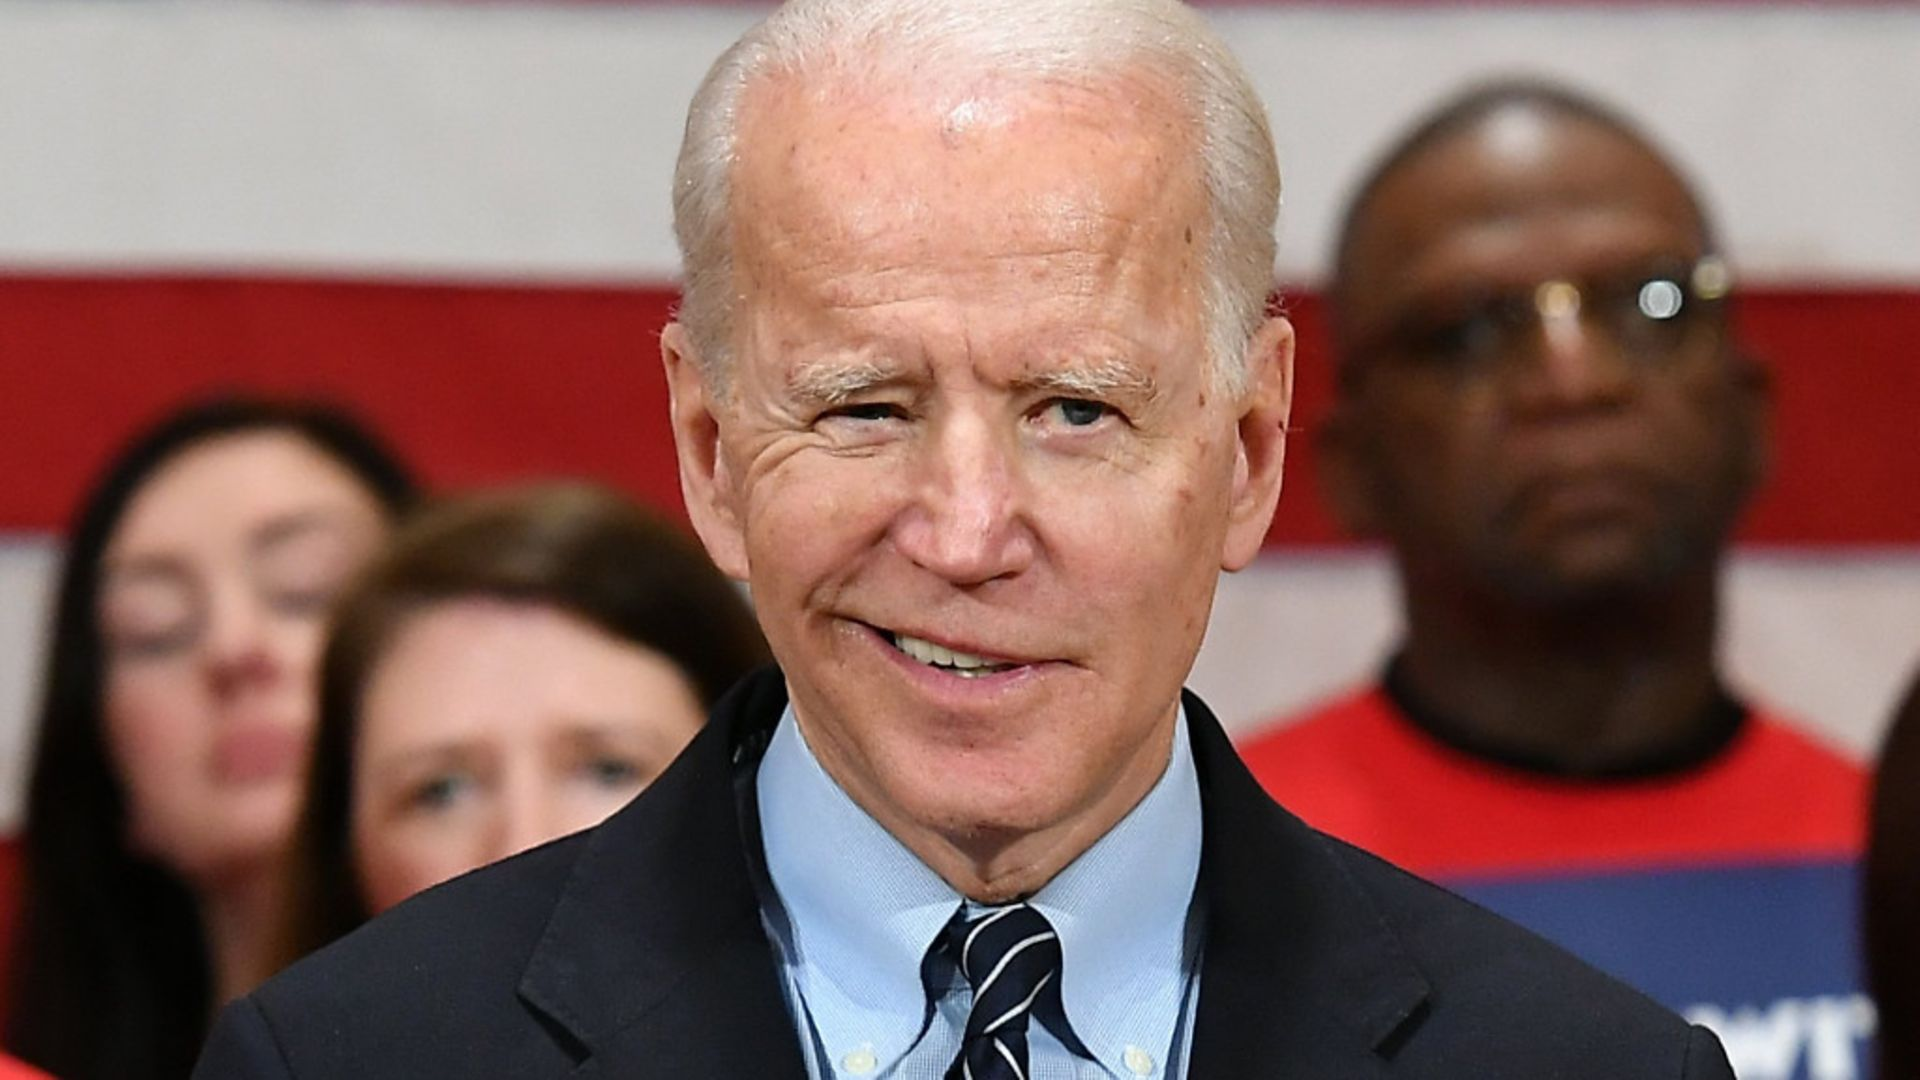 Joe Biden, who takes office this month - Credit: AFP via Getty Images